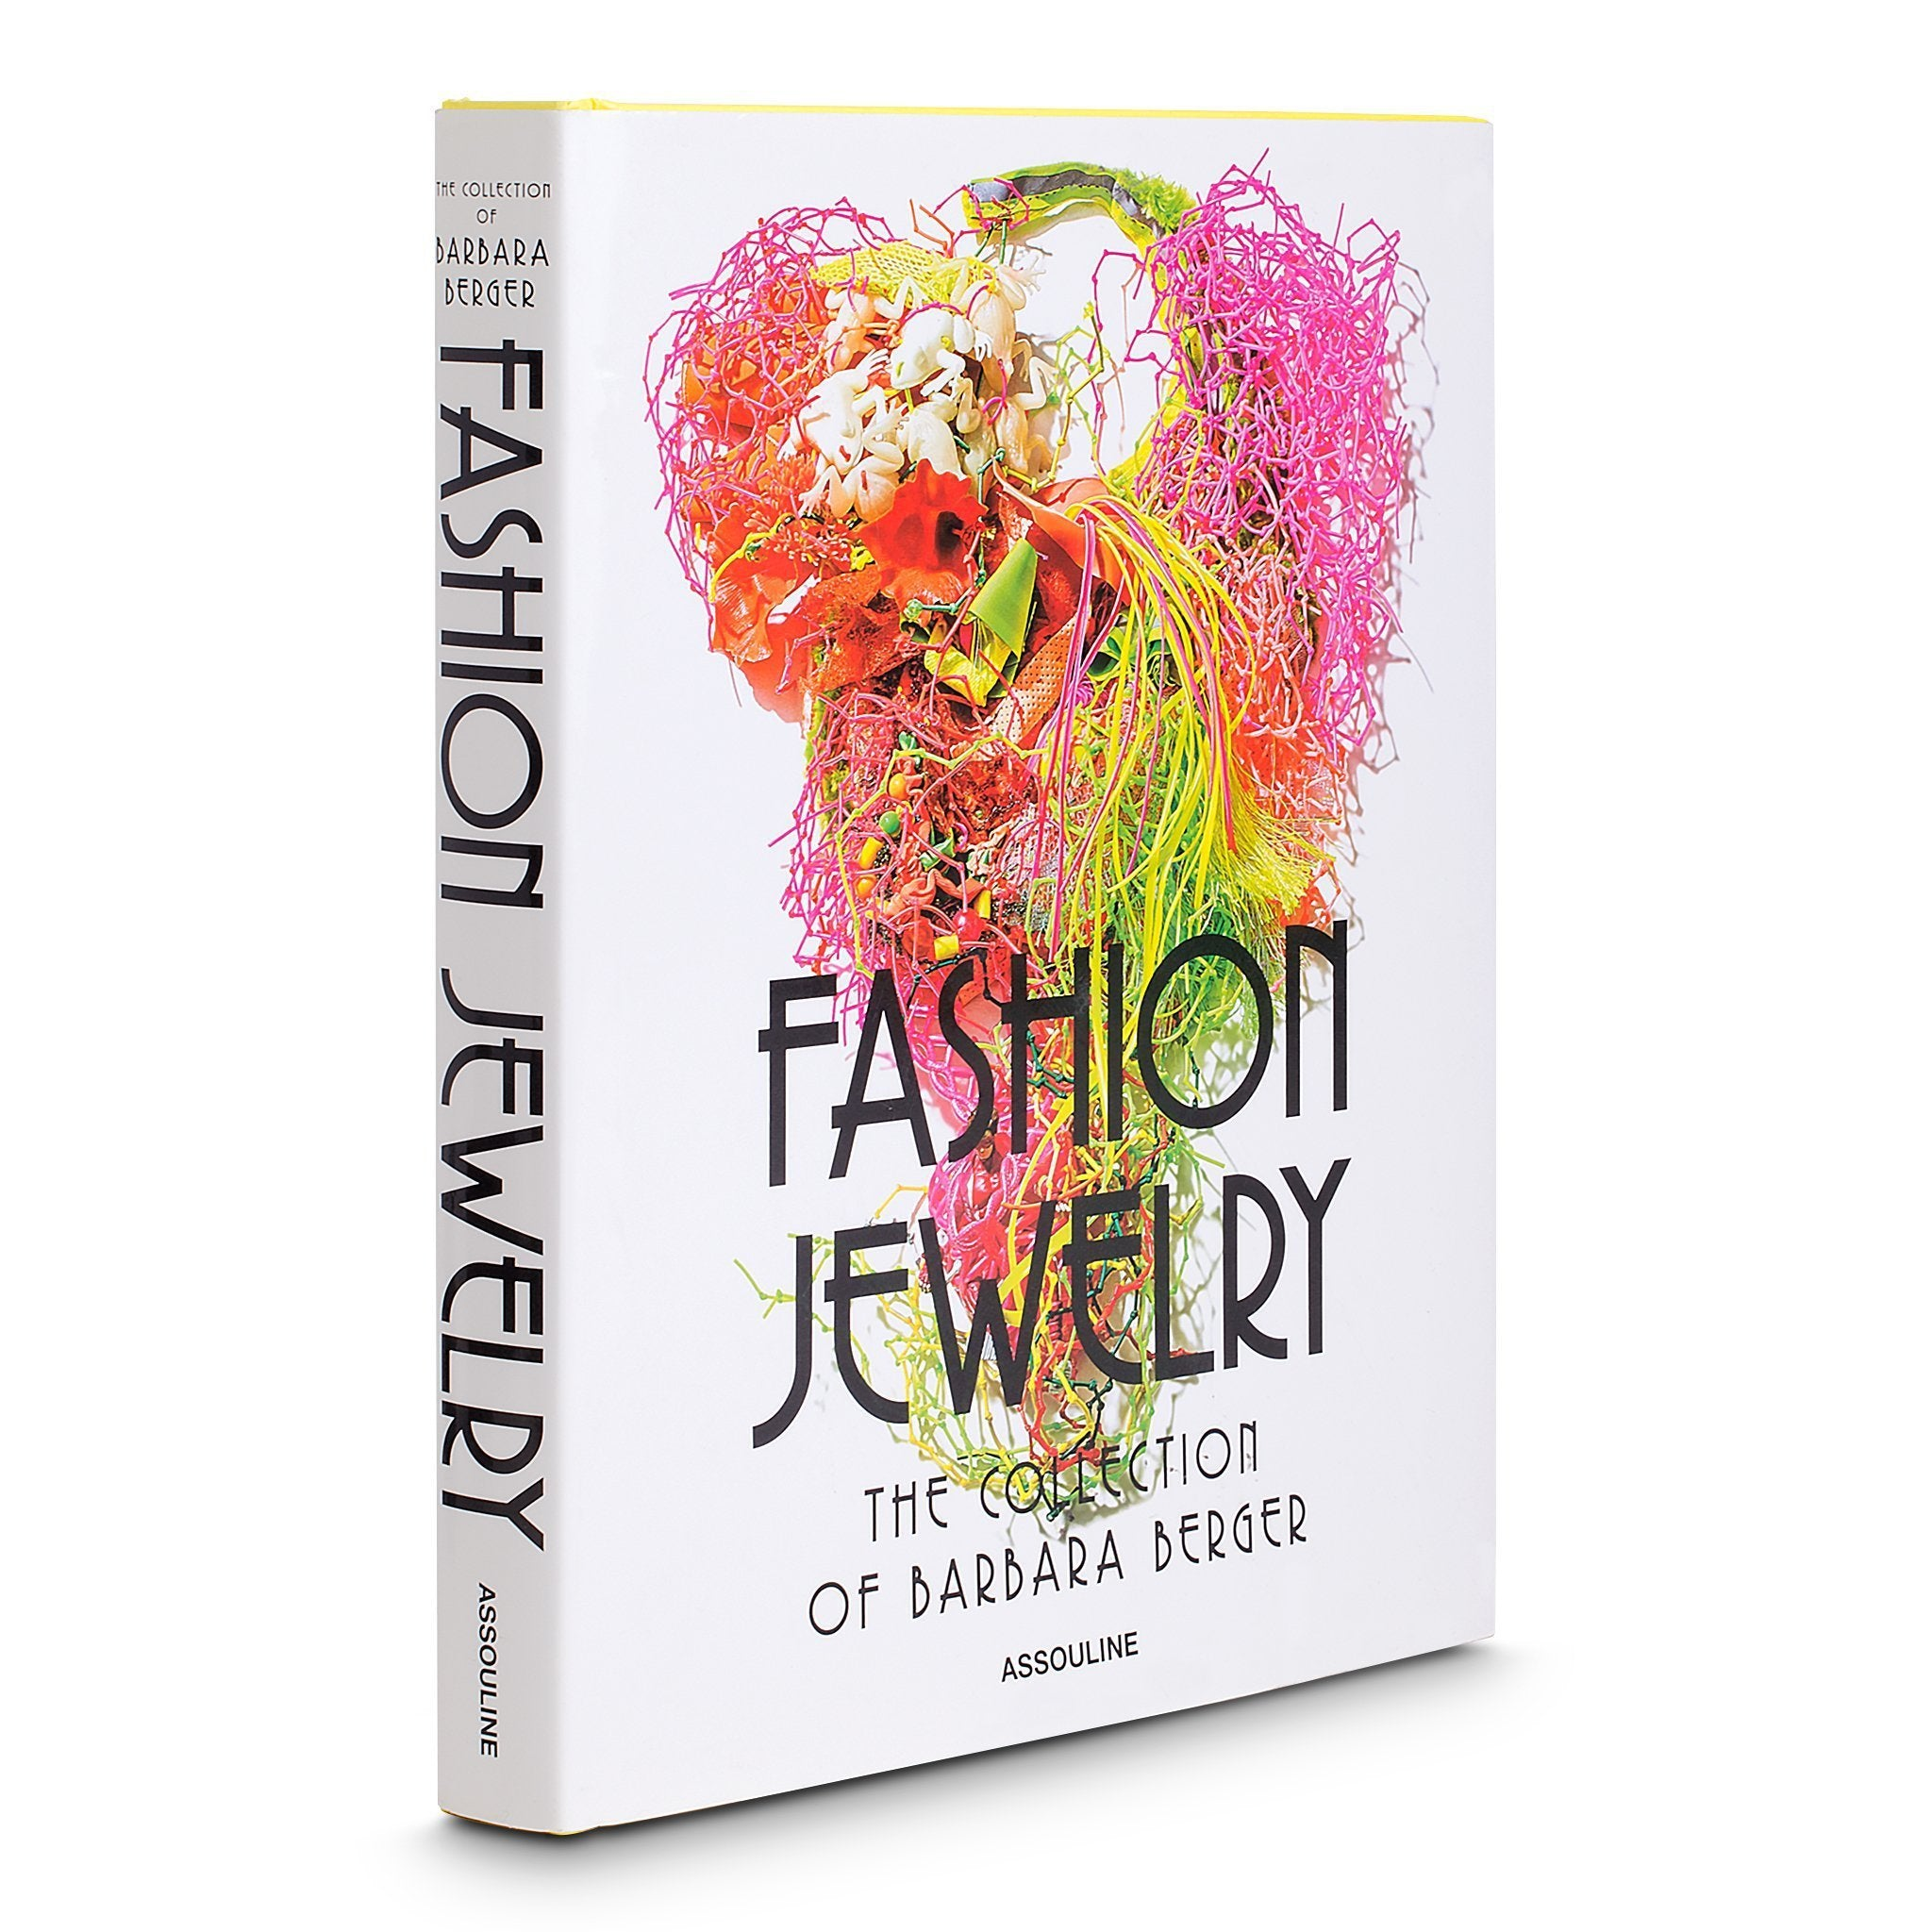 Fashion Jewelry: The Collection of Barbara Berger - Assouline